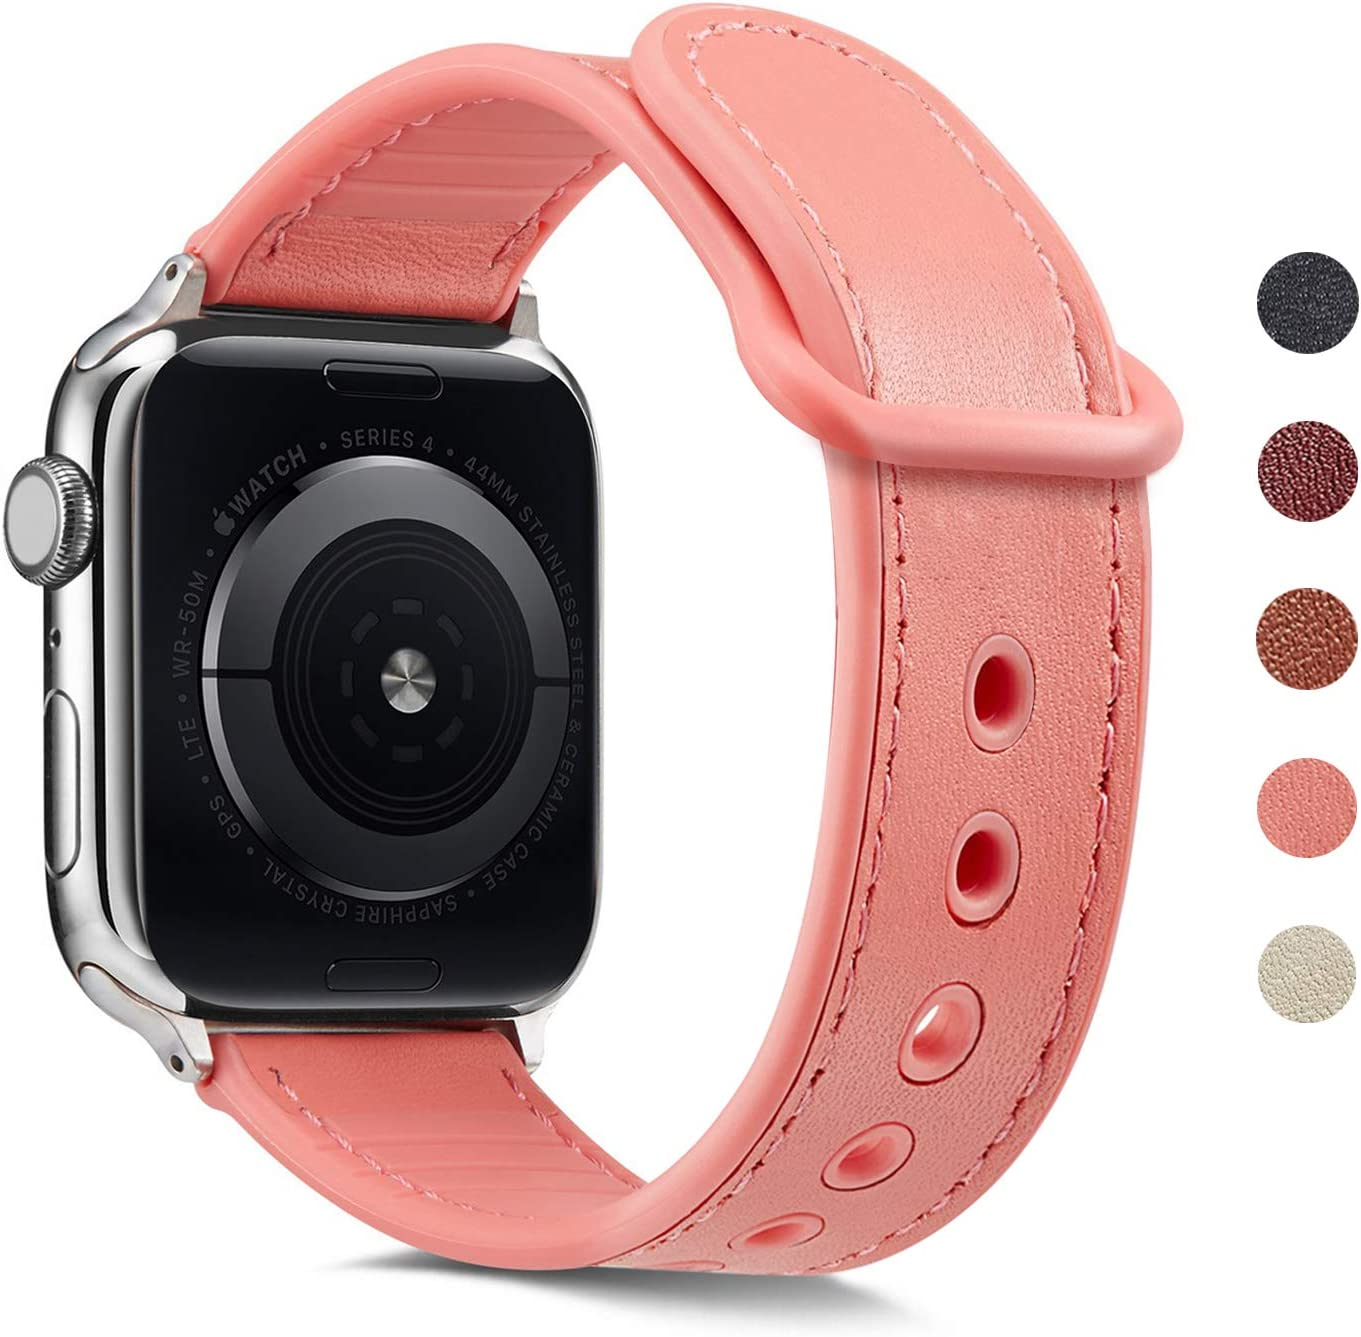 Erwubala Sport Watch Band Compatible with Apple Watch Band 38mm 40mm 42mm 44mm,Genuine Leather+Premium TPU Replacement Sport Strap iWatch Band for Apple Watch Series 5/4/3/2/1 (Rose Pink, 38mm/40mm)